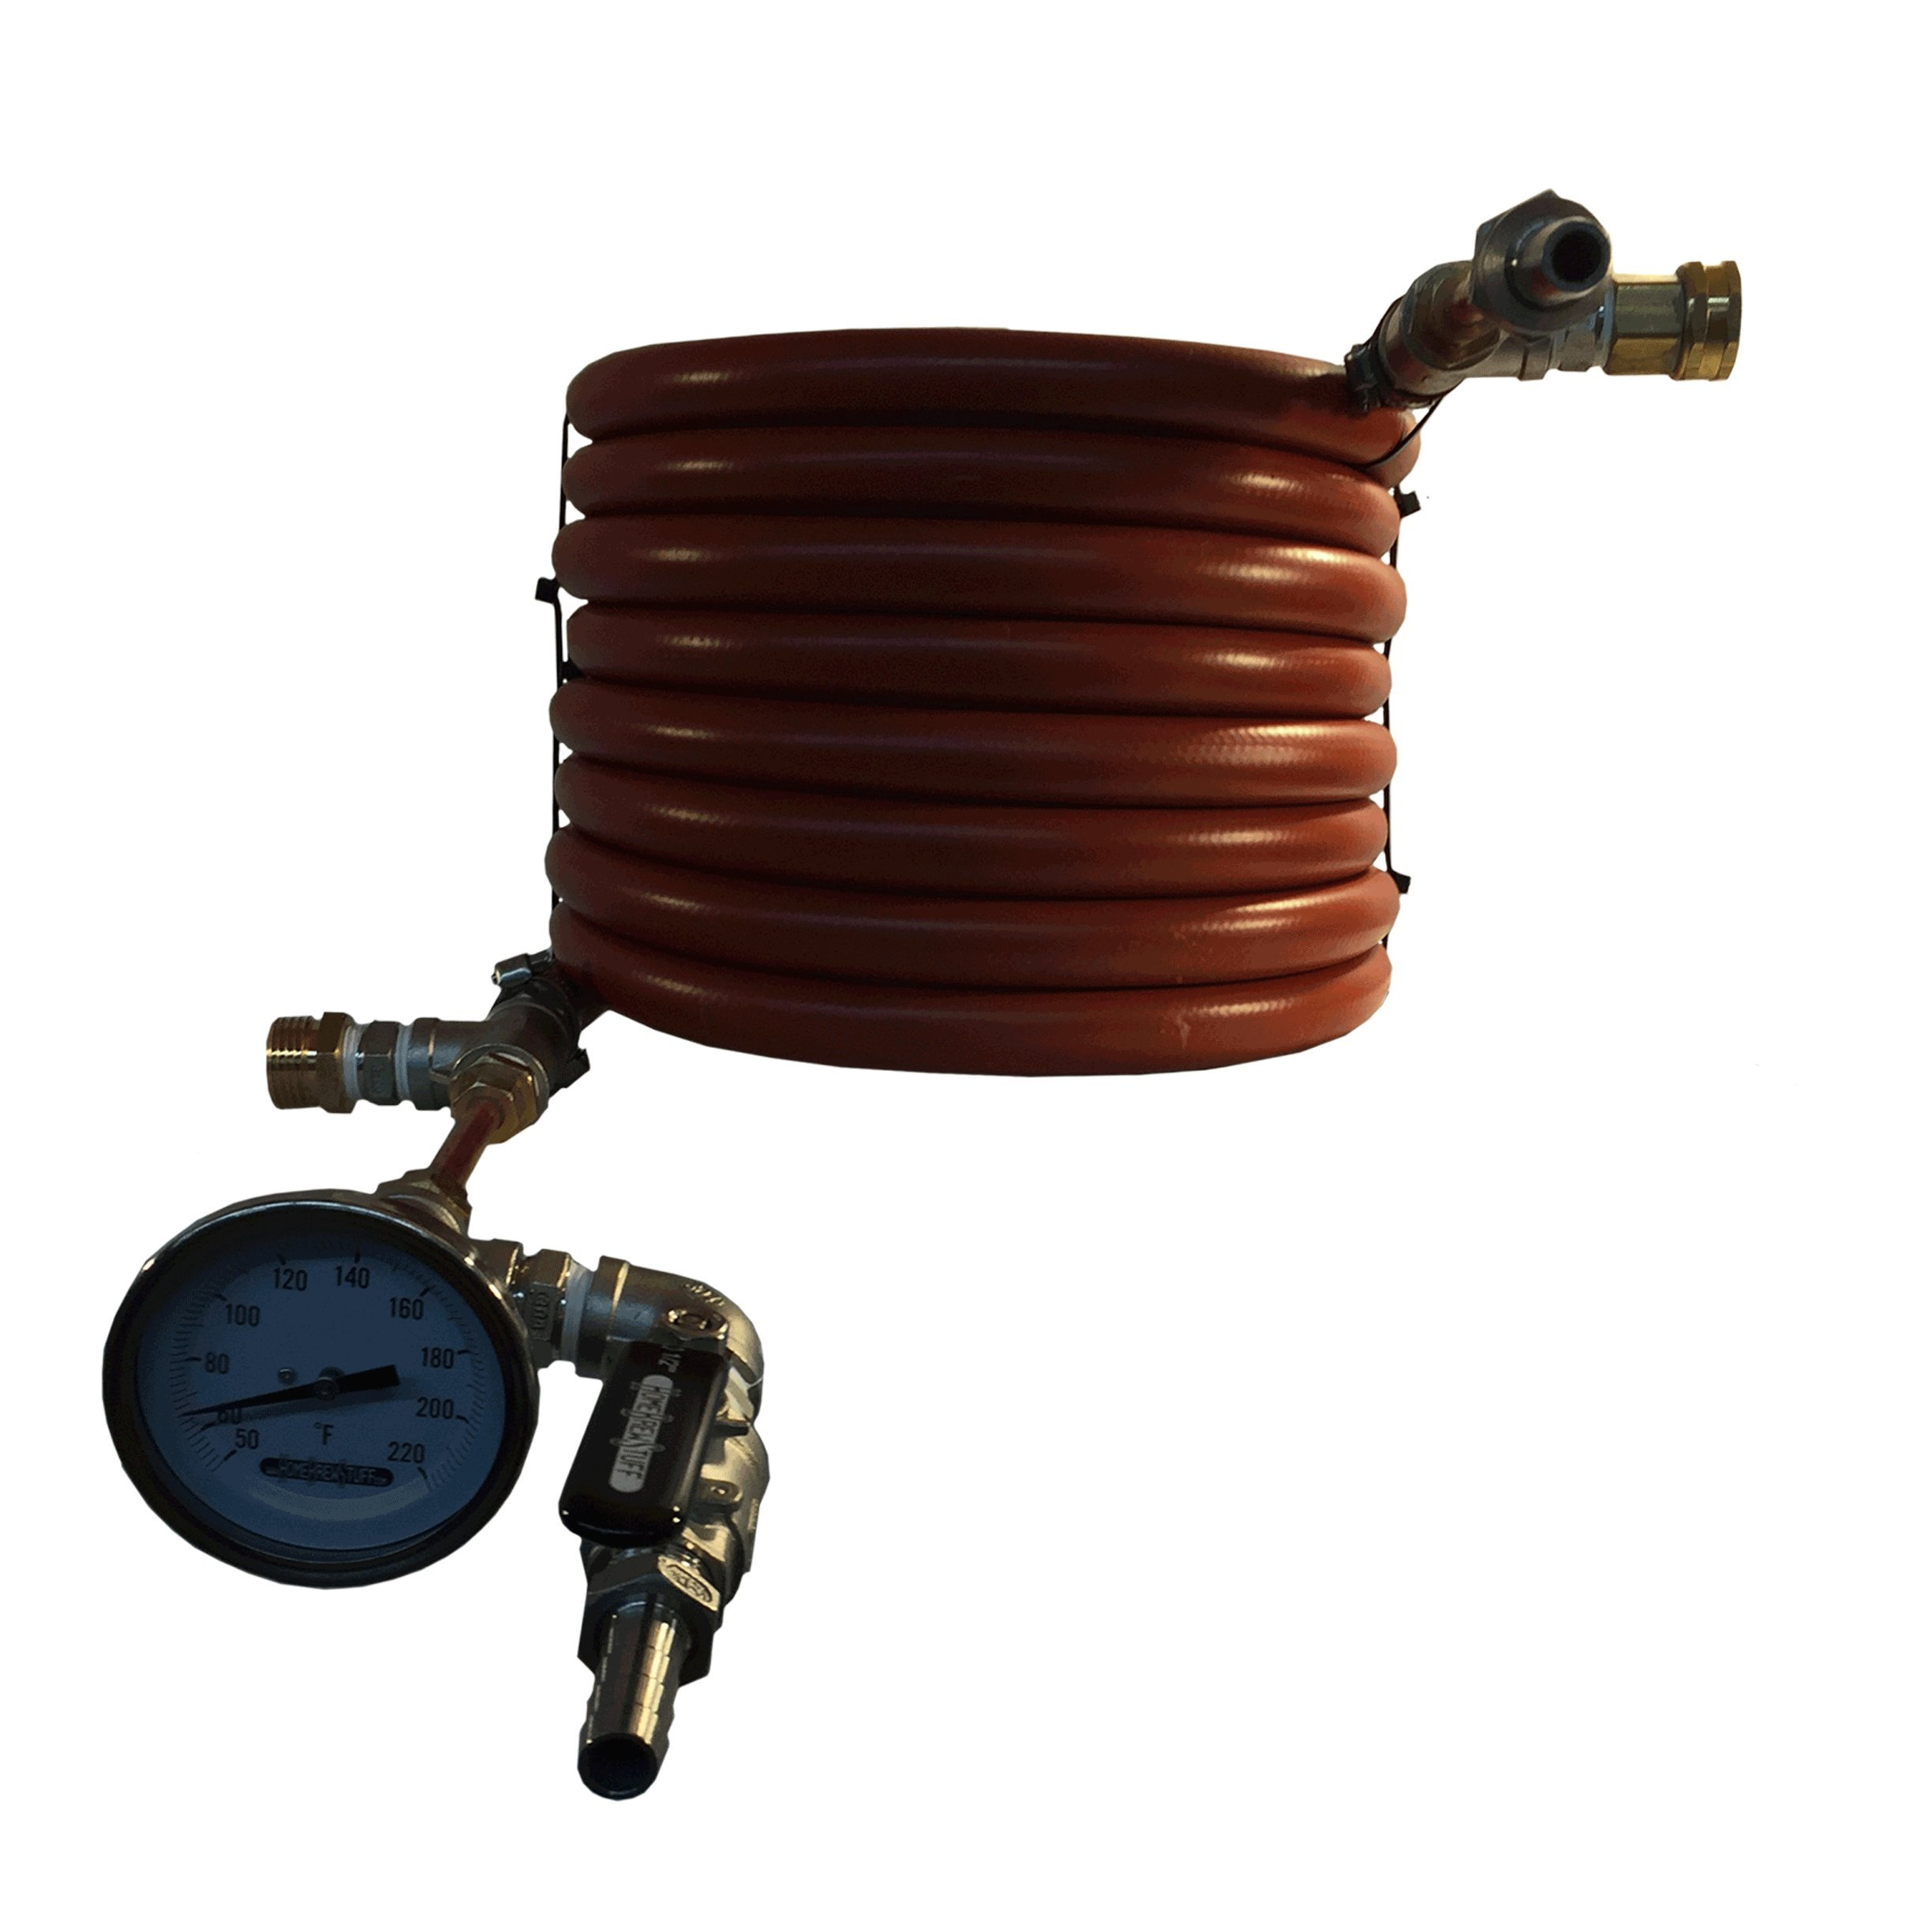 HomeBrewstuff Super efficient CounterFlow Wort Chiller With Optional Valve and Thermometer Upgrade (Optional Valve and Thermometer Upgrade) by Home Brew Stuff